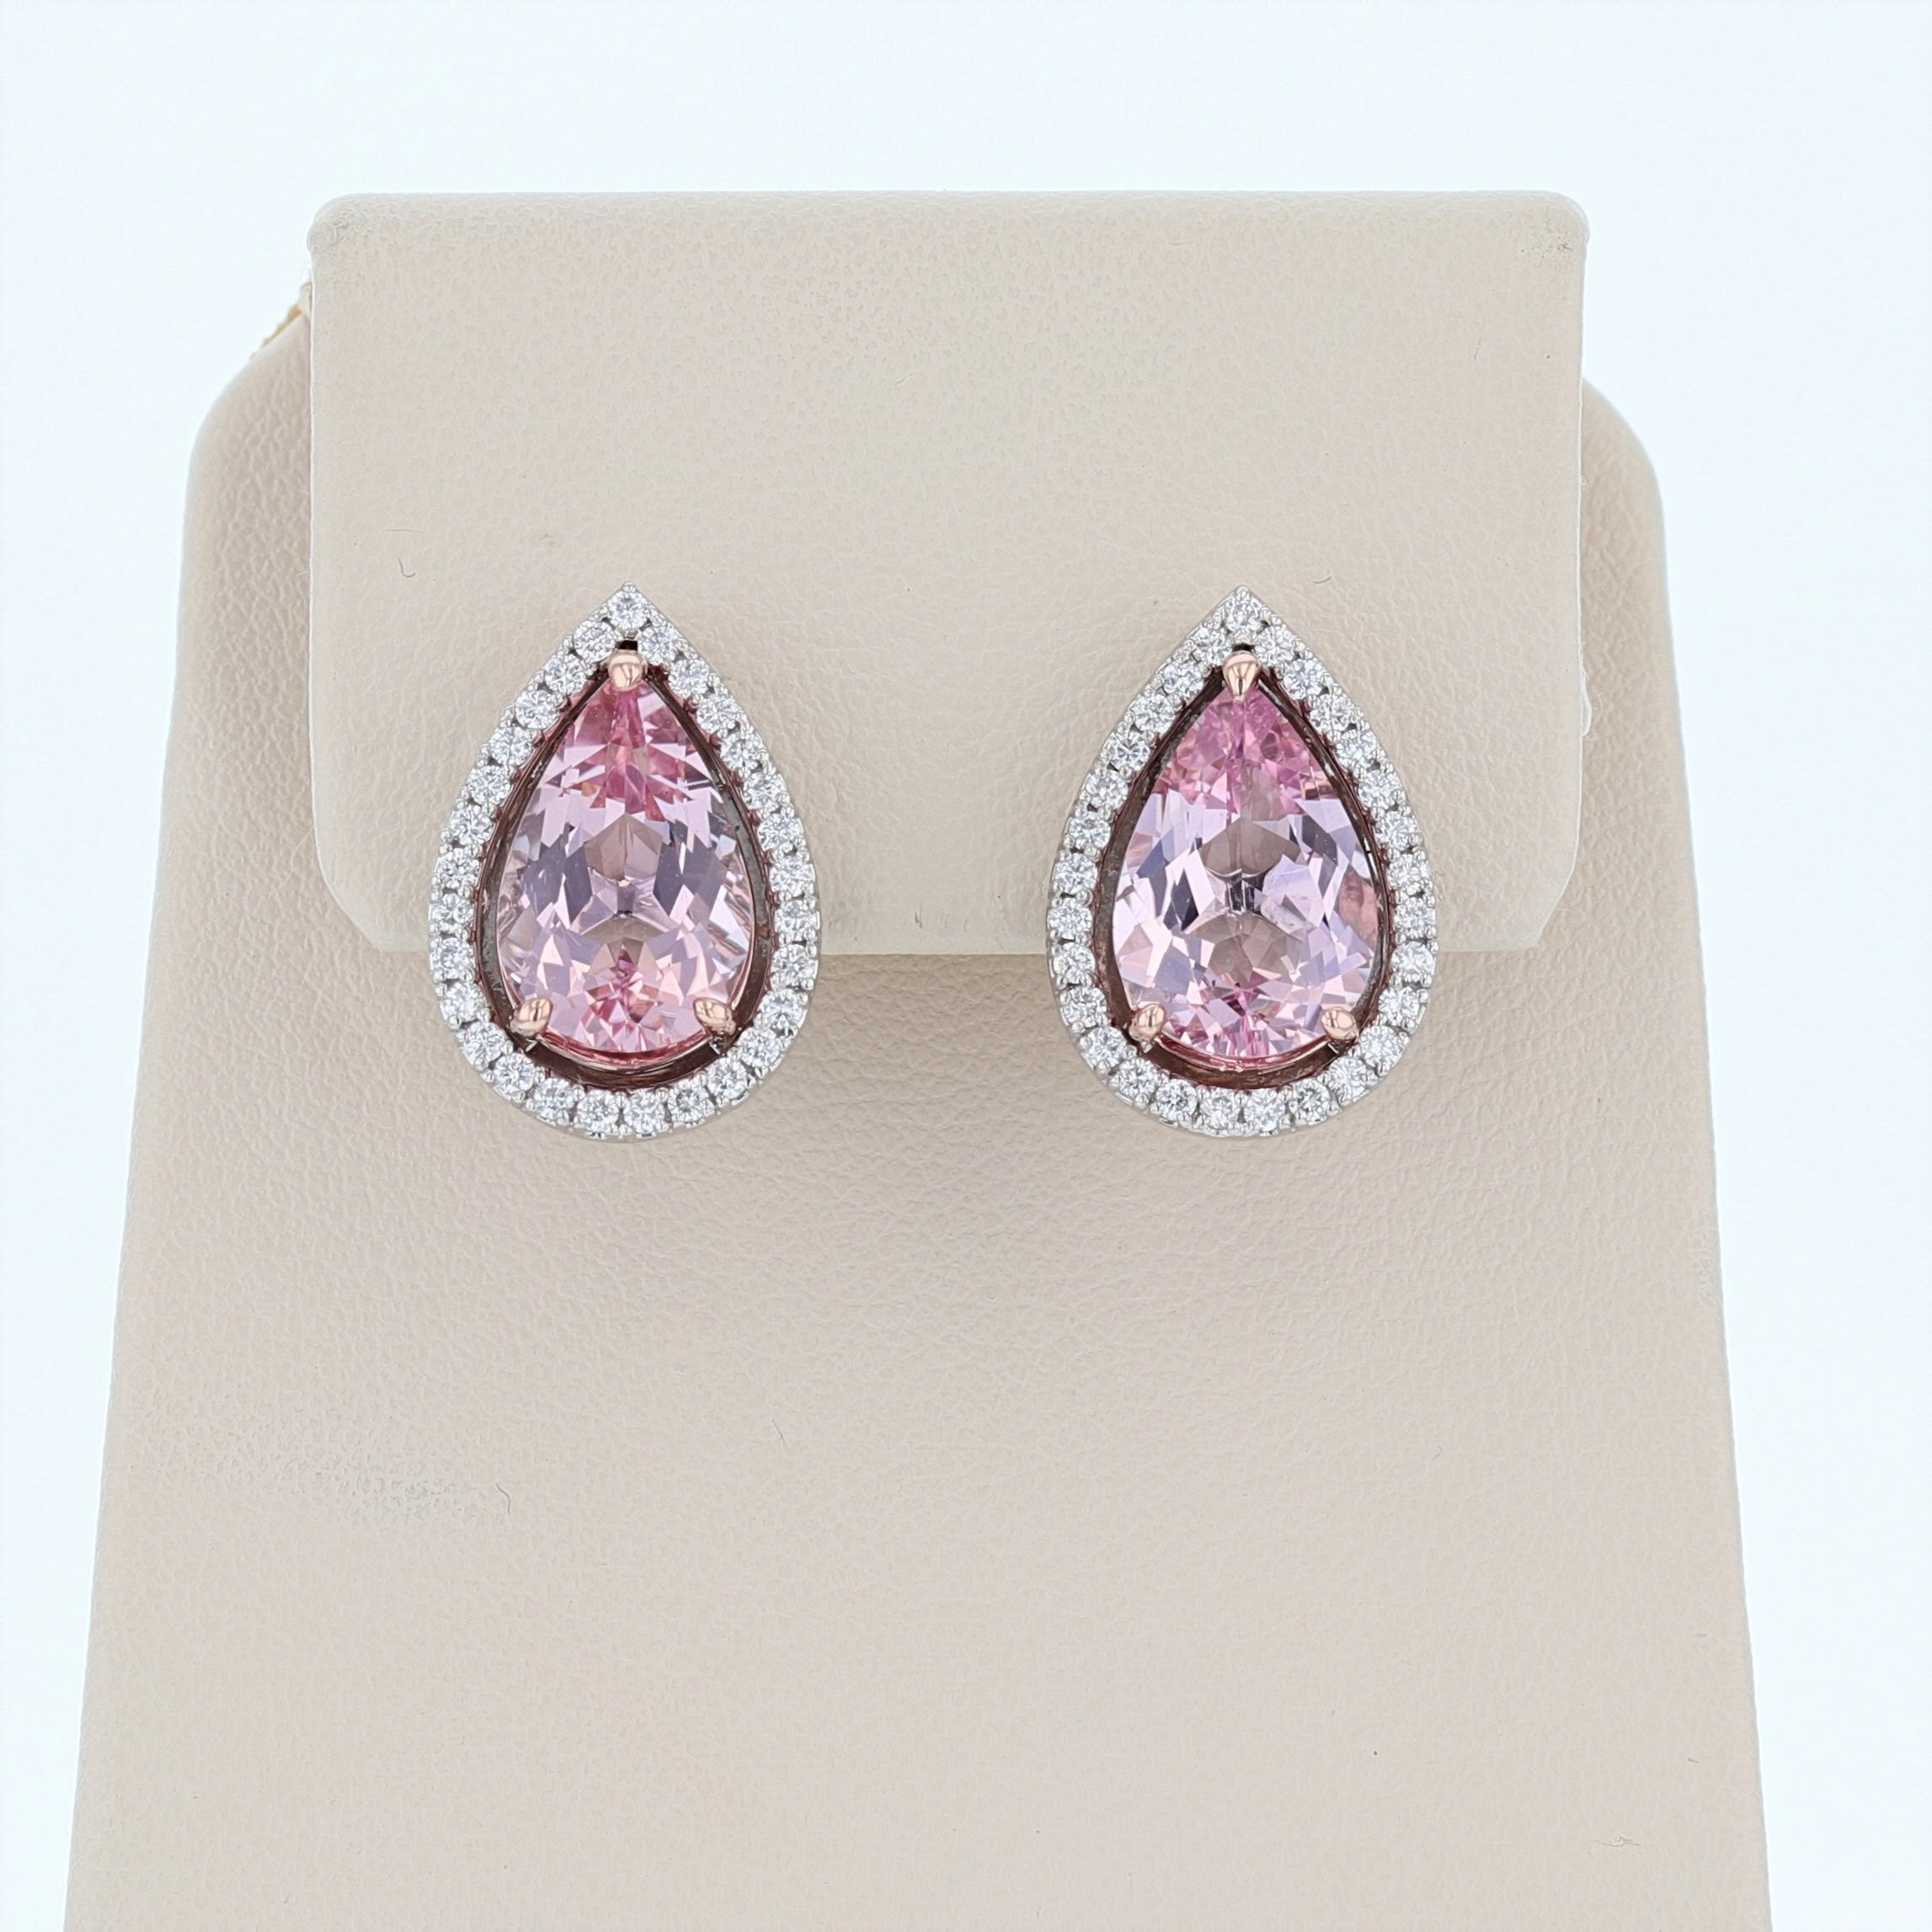 14K White and Rose Gold Pear Shape Morganite Stud Earrings - Nazarelle